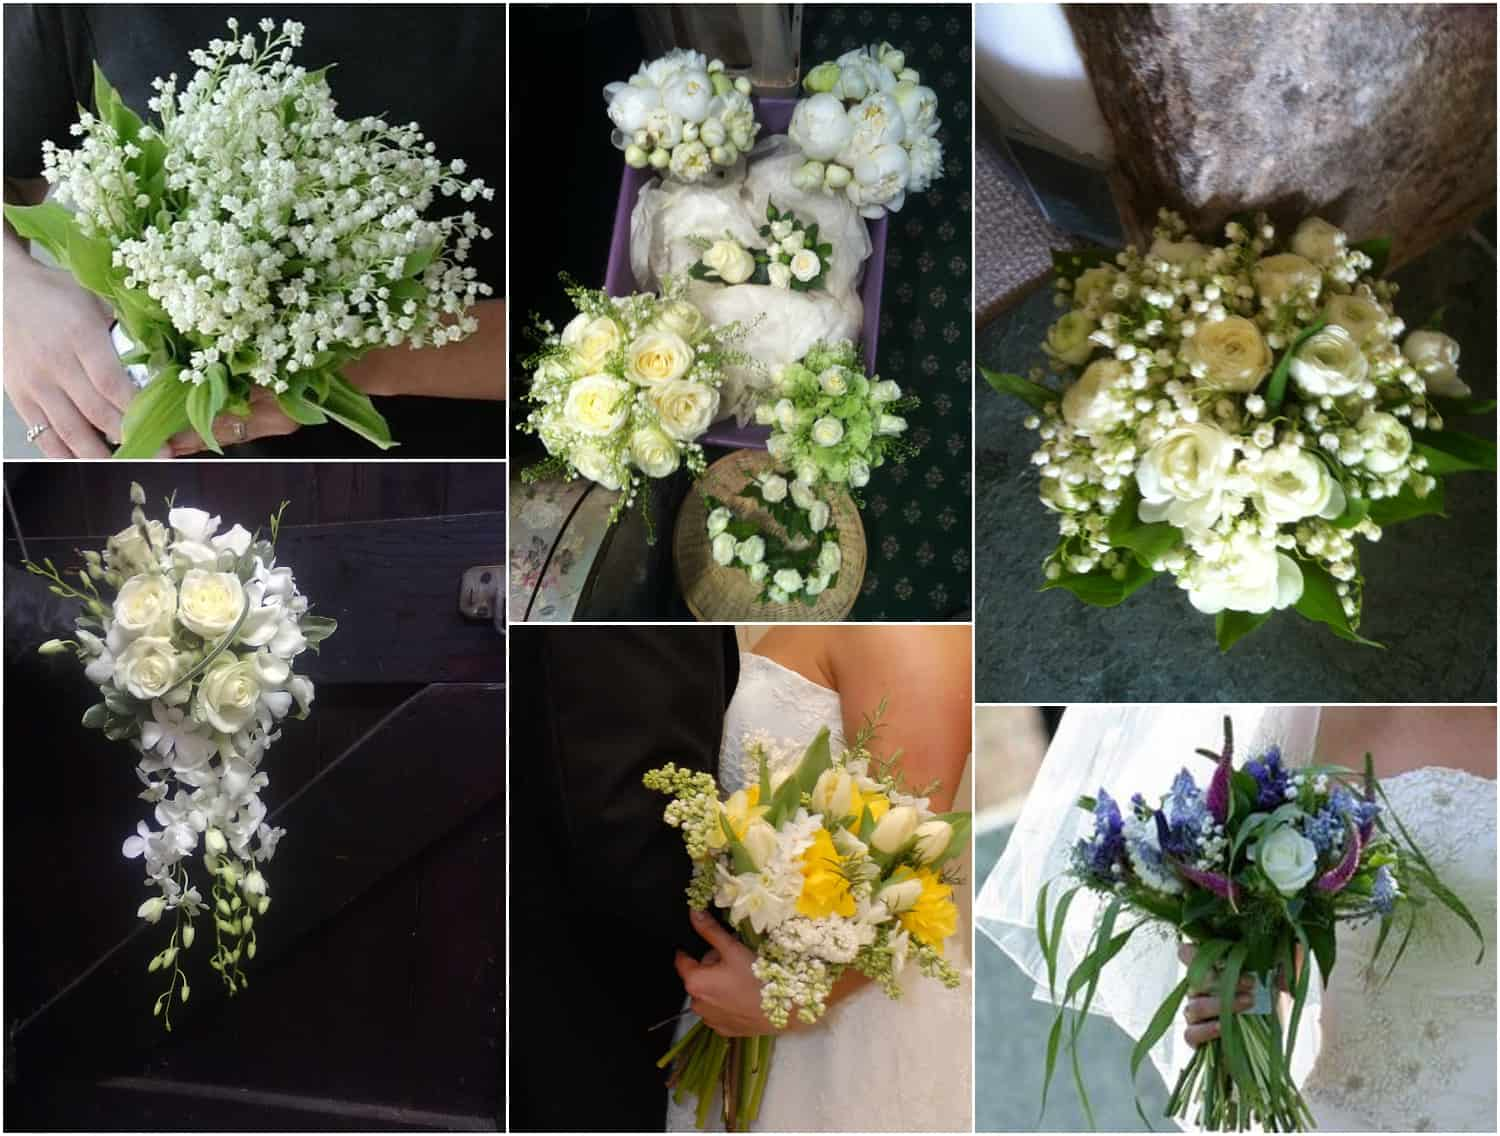 Wedding bouquets with seasonal flowers, by Sarah Pepper